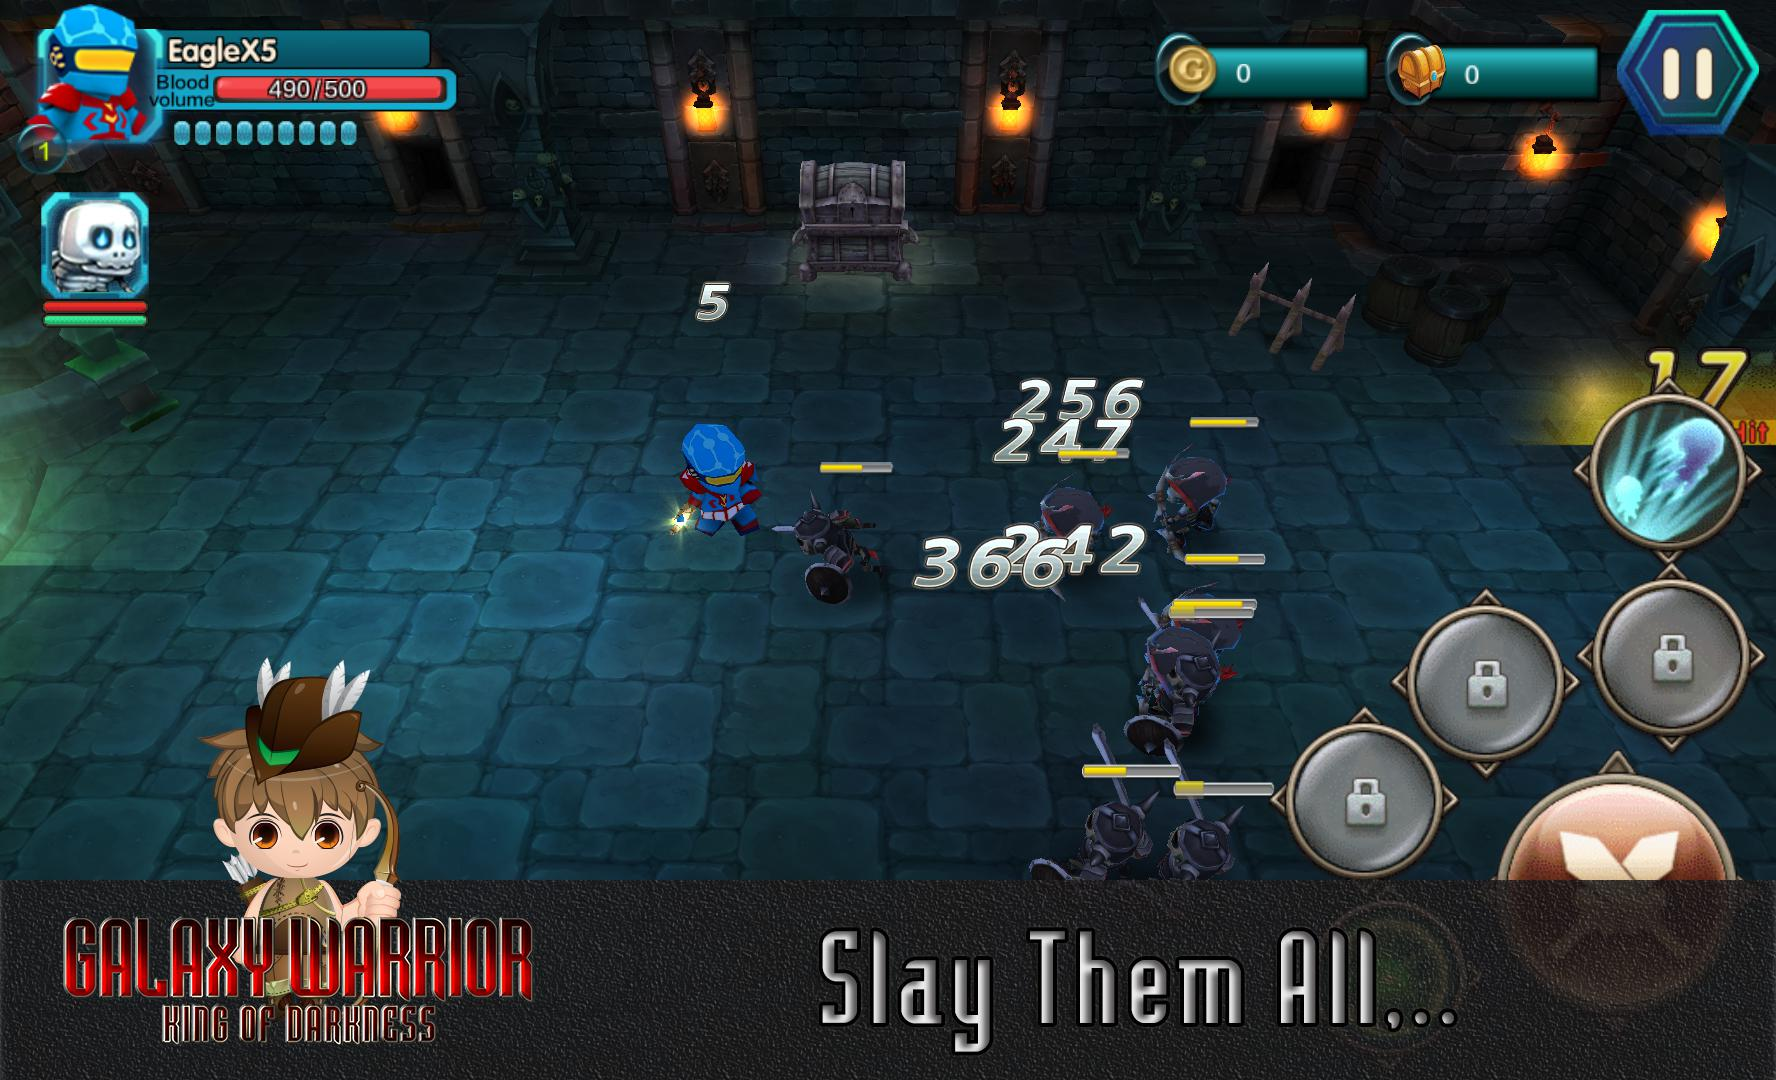 Galaxy Warriors - The Kingdom Of Darkness 游戏截图5